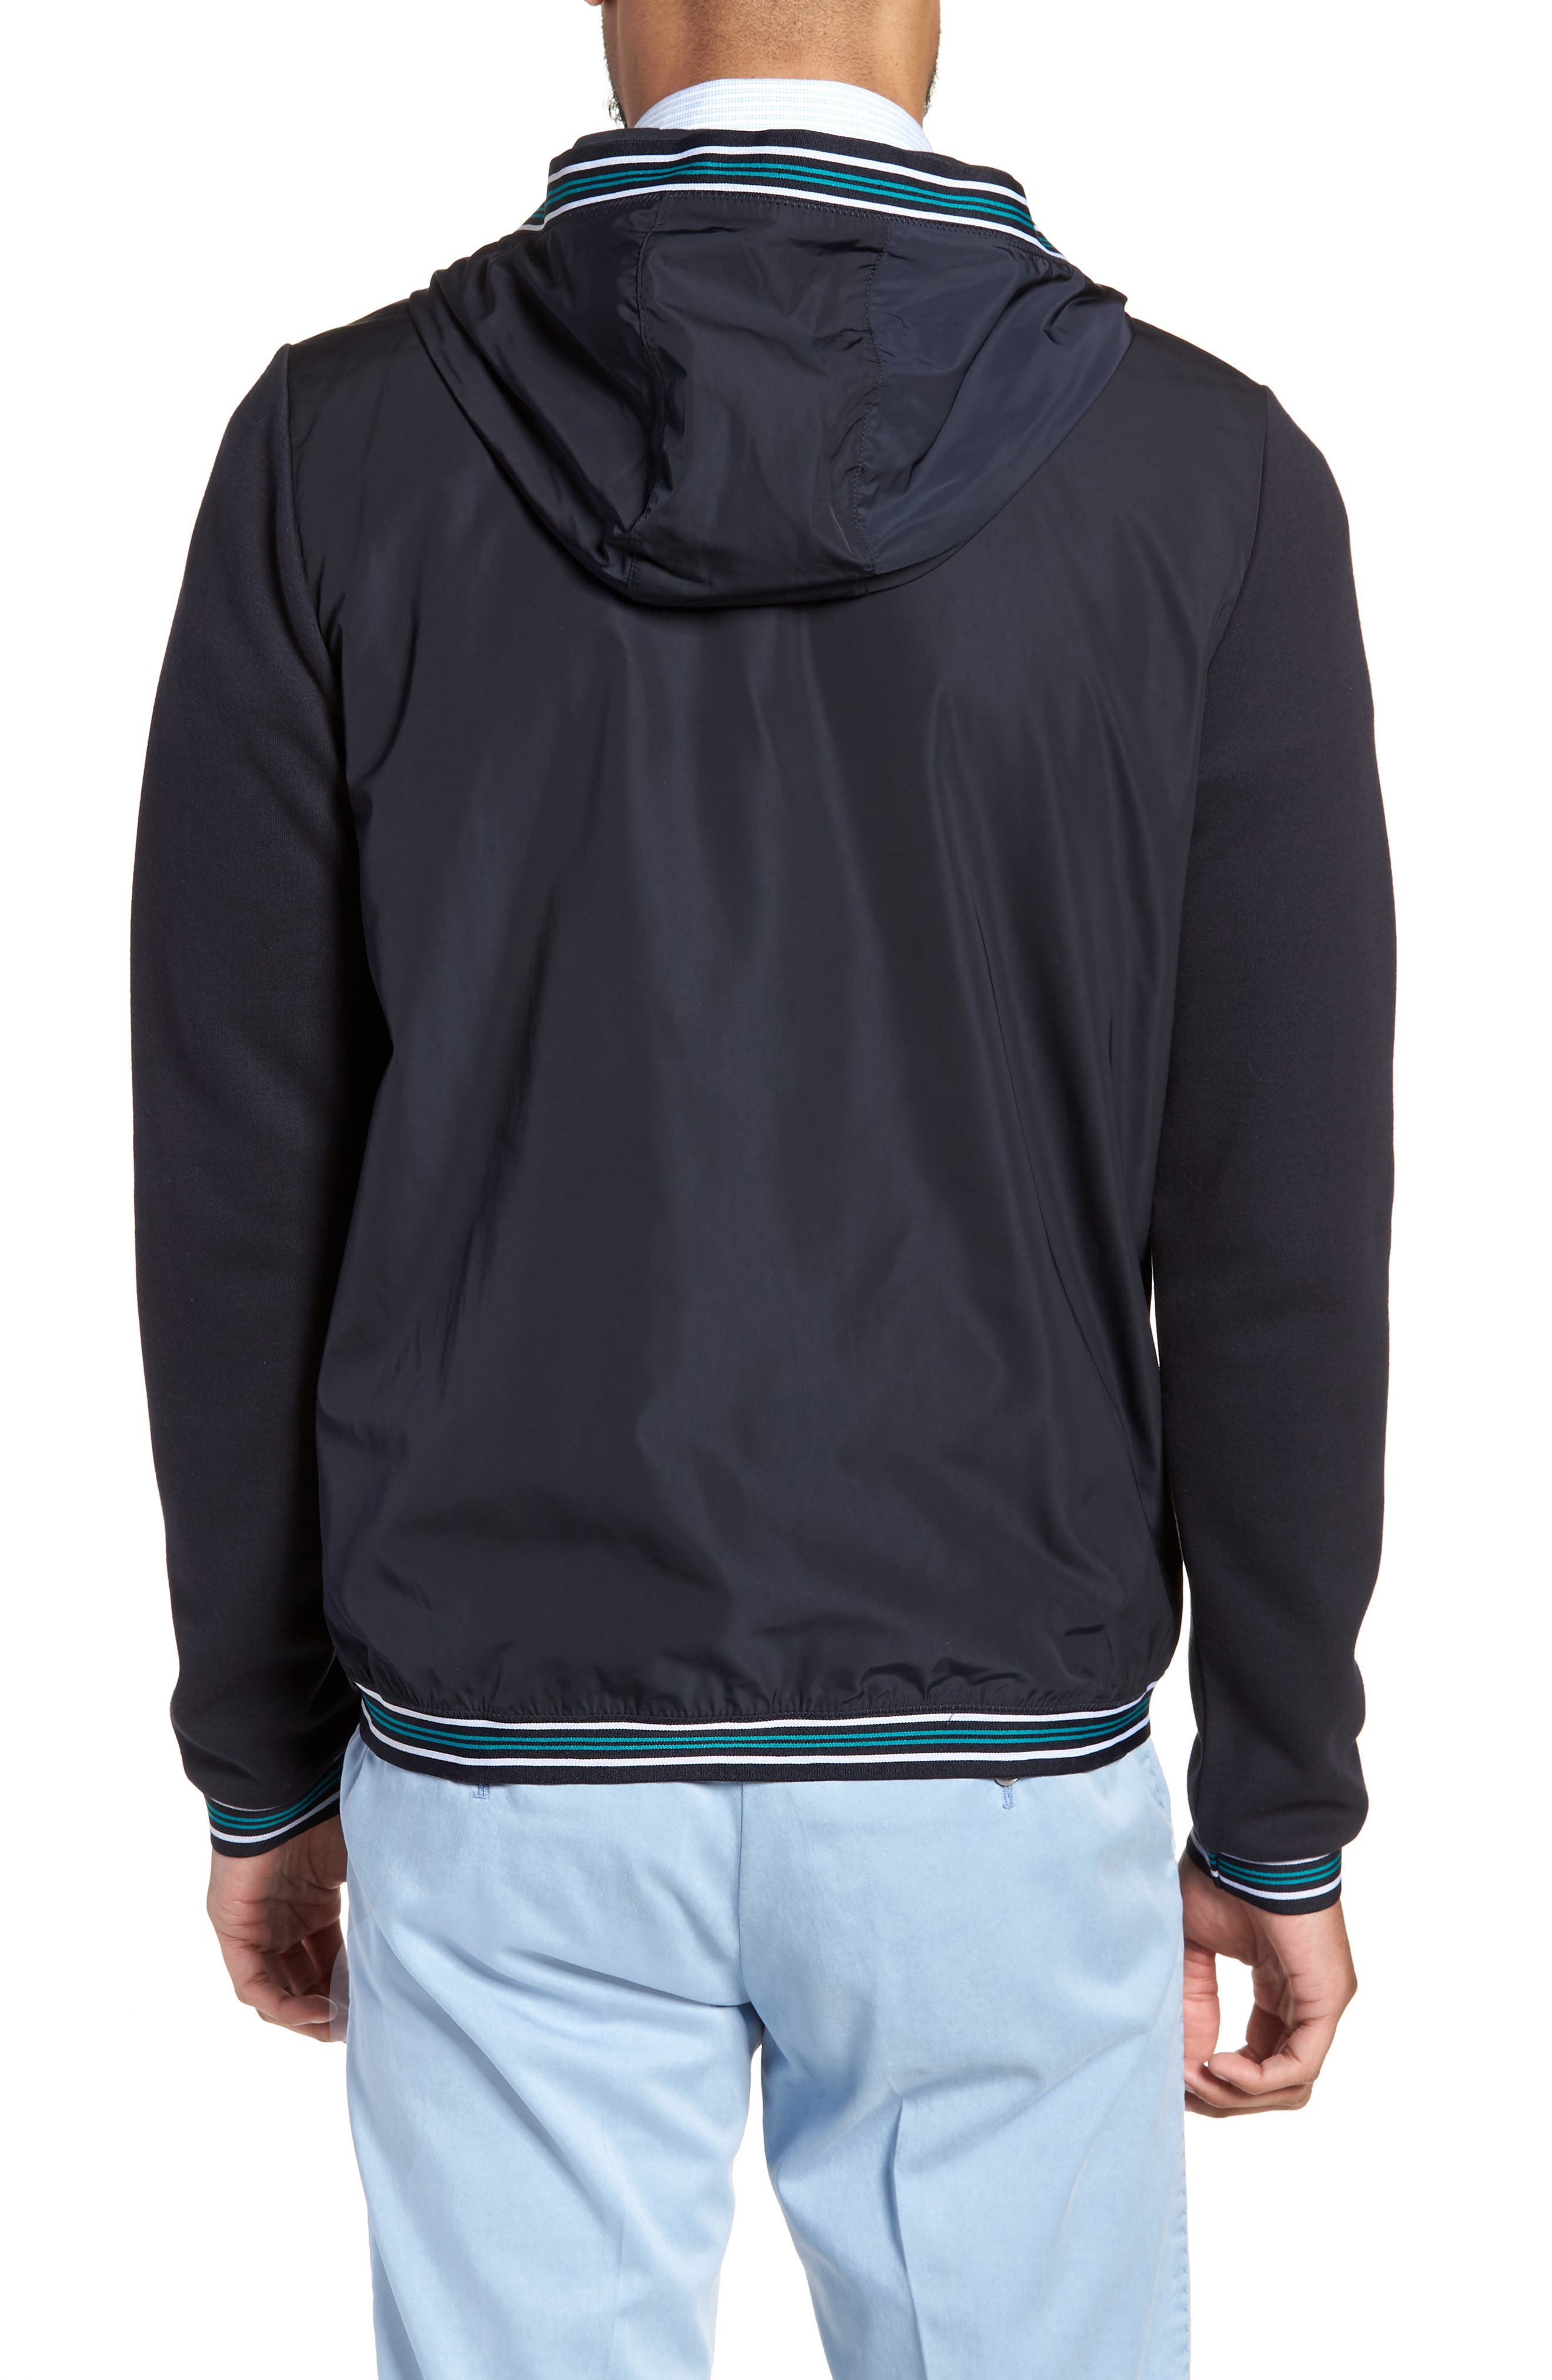 Sibly Slim Fit Jersey Hooded Jacket,                             Alternate thumbnail 2, color,                             Blue